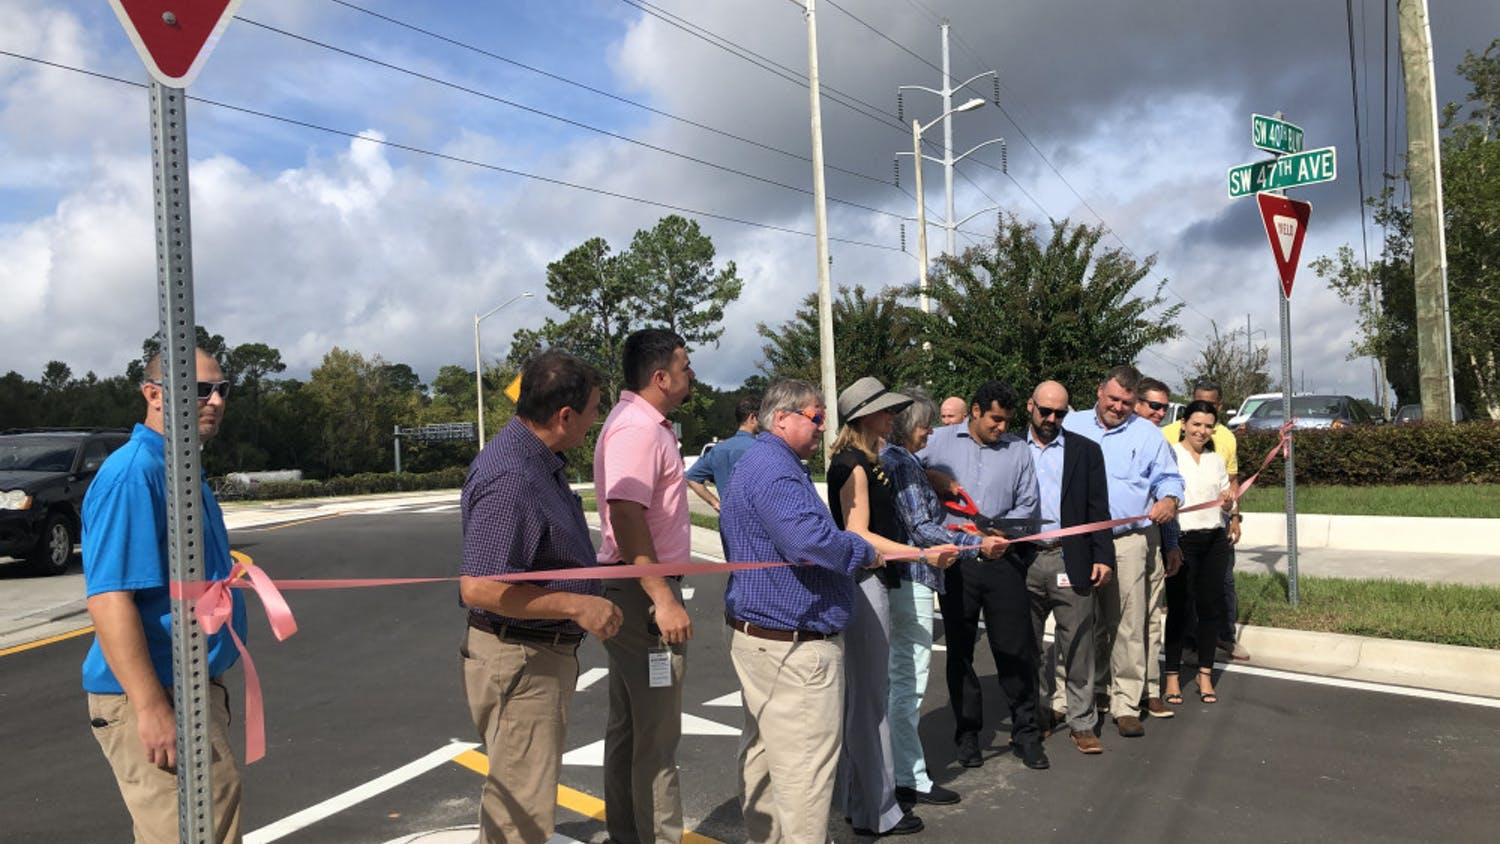 City Commissioner David Arreola cuts the ribbon for the grand opening of the new road linking SW 47th Avenue and 40th Boulevard to Archer Road Tuesday at 10:30 a.m.. This road was built to give drivers a more direct route through the city as well as pull traffic off Archer Road, 34th Street and I-75.